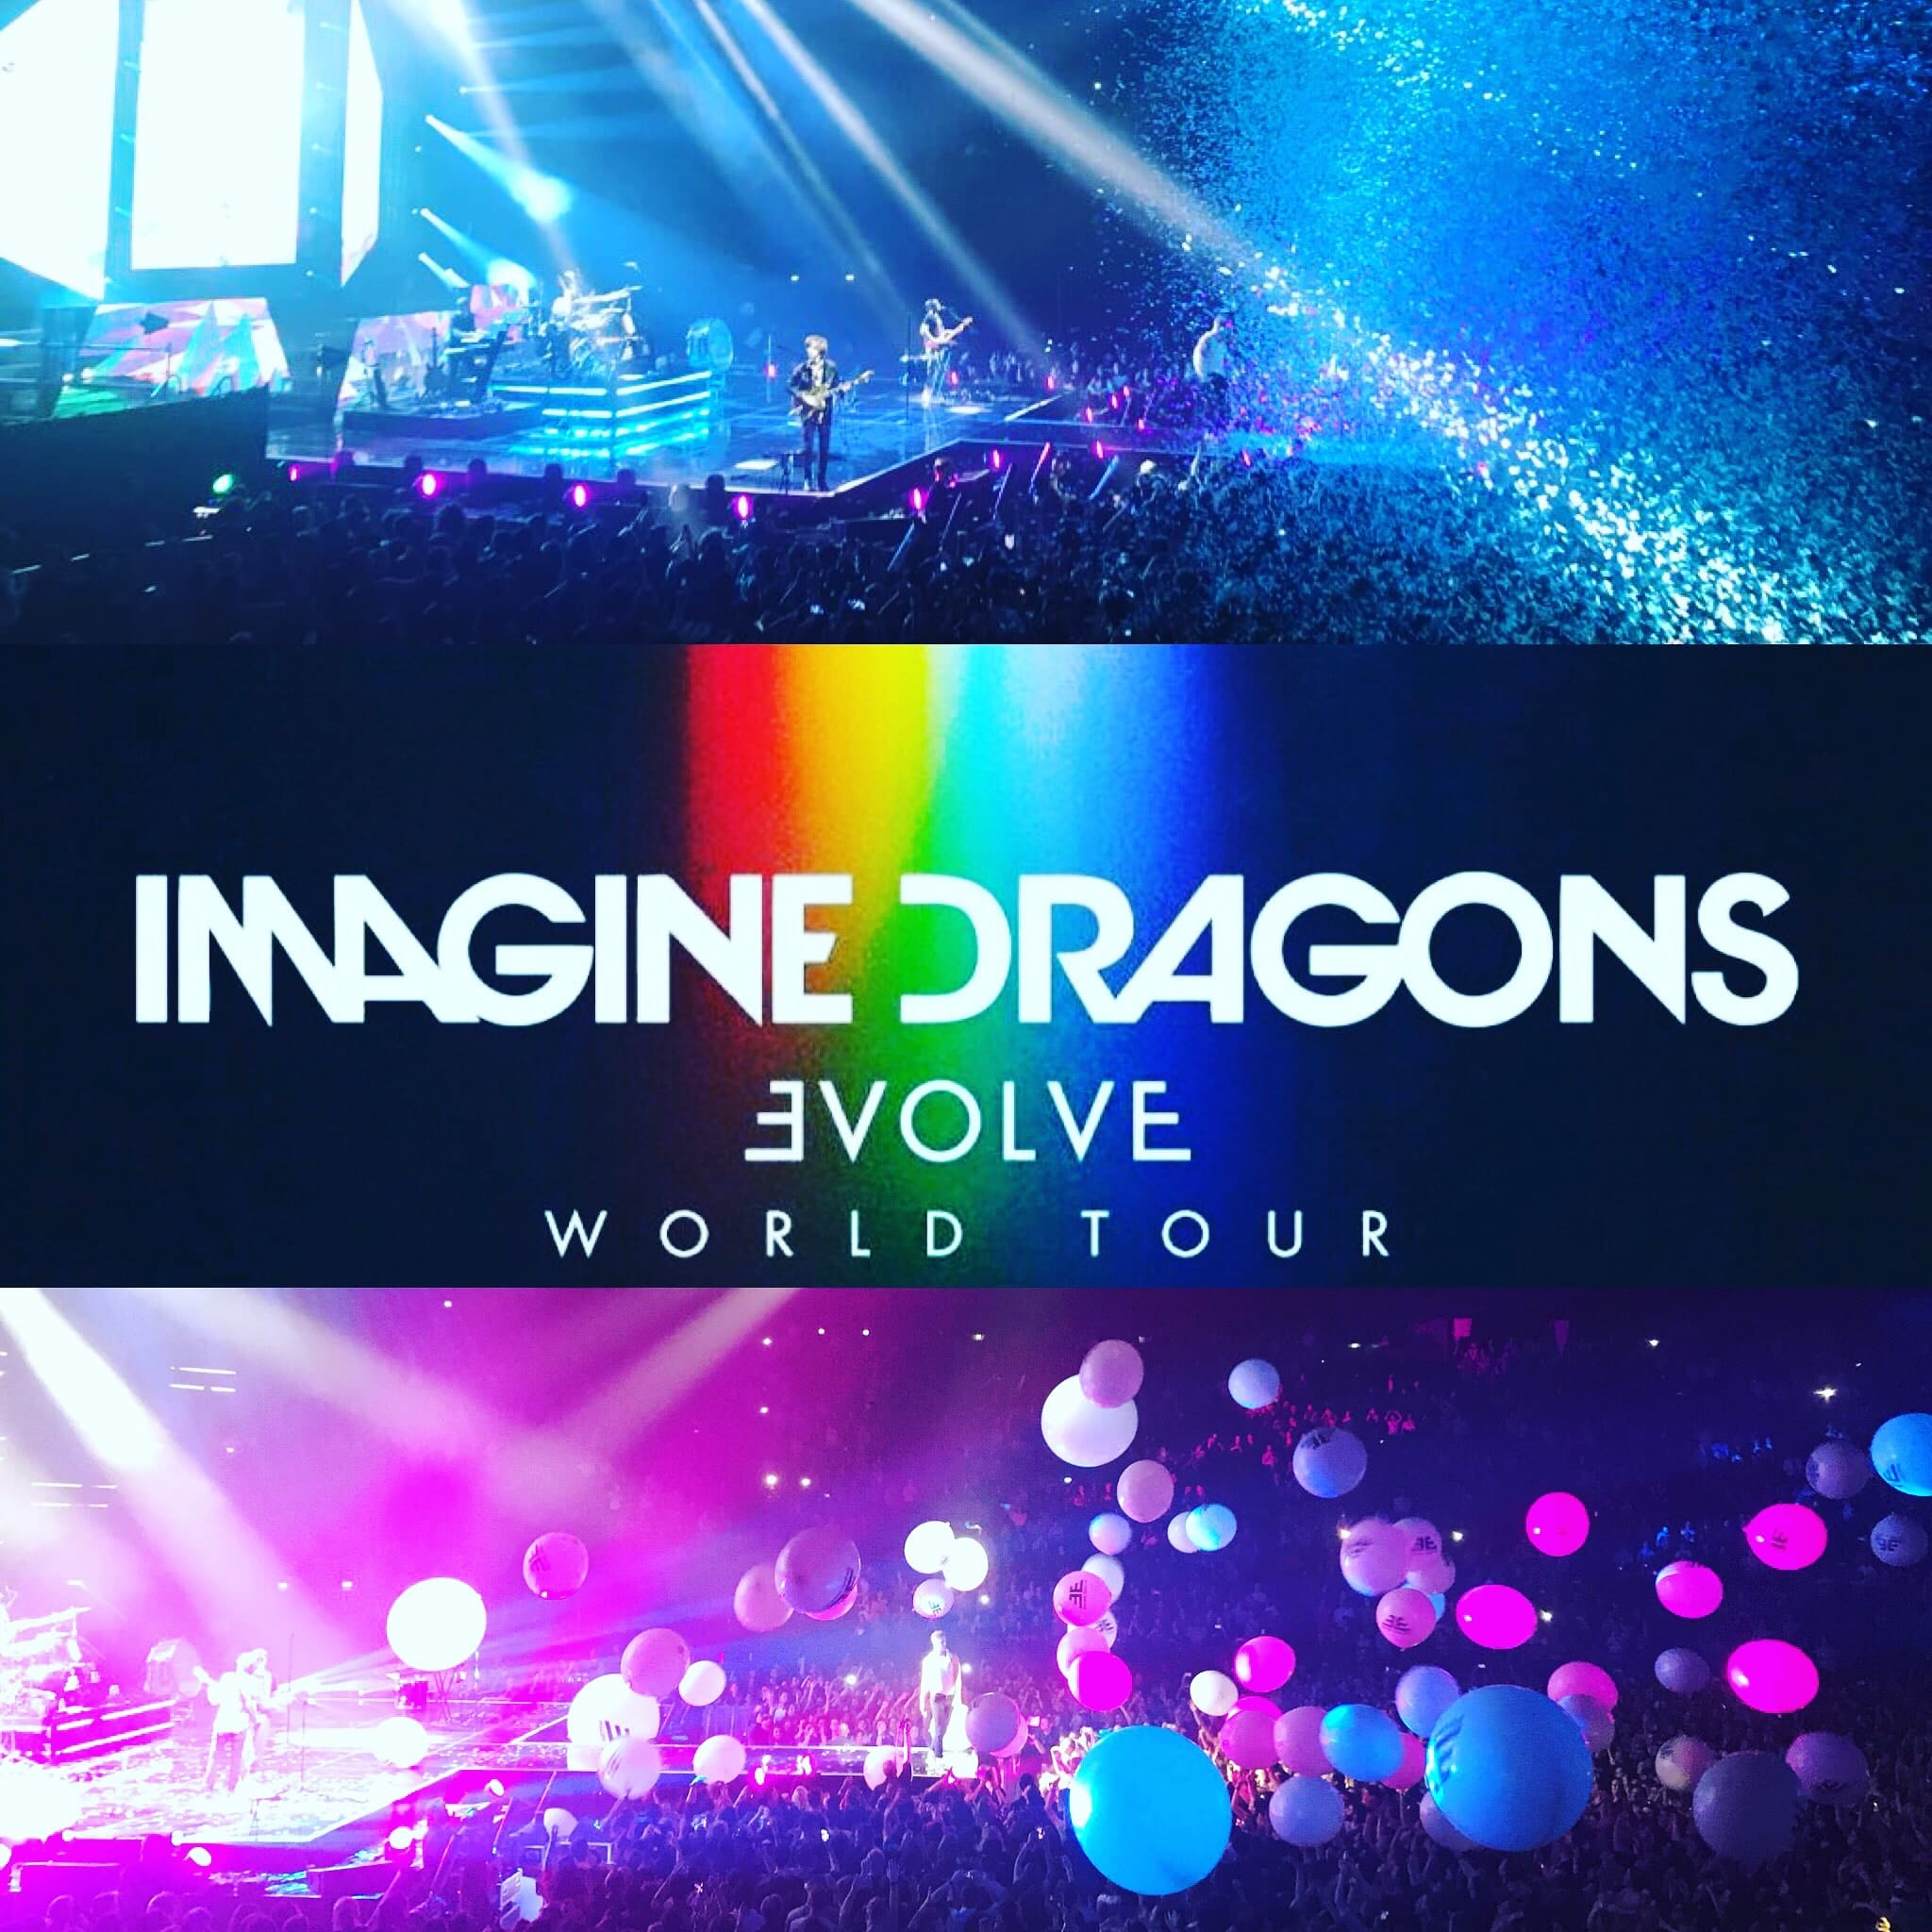 Imagine Dragons image concert AccorHotels Arena Paris 04